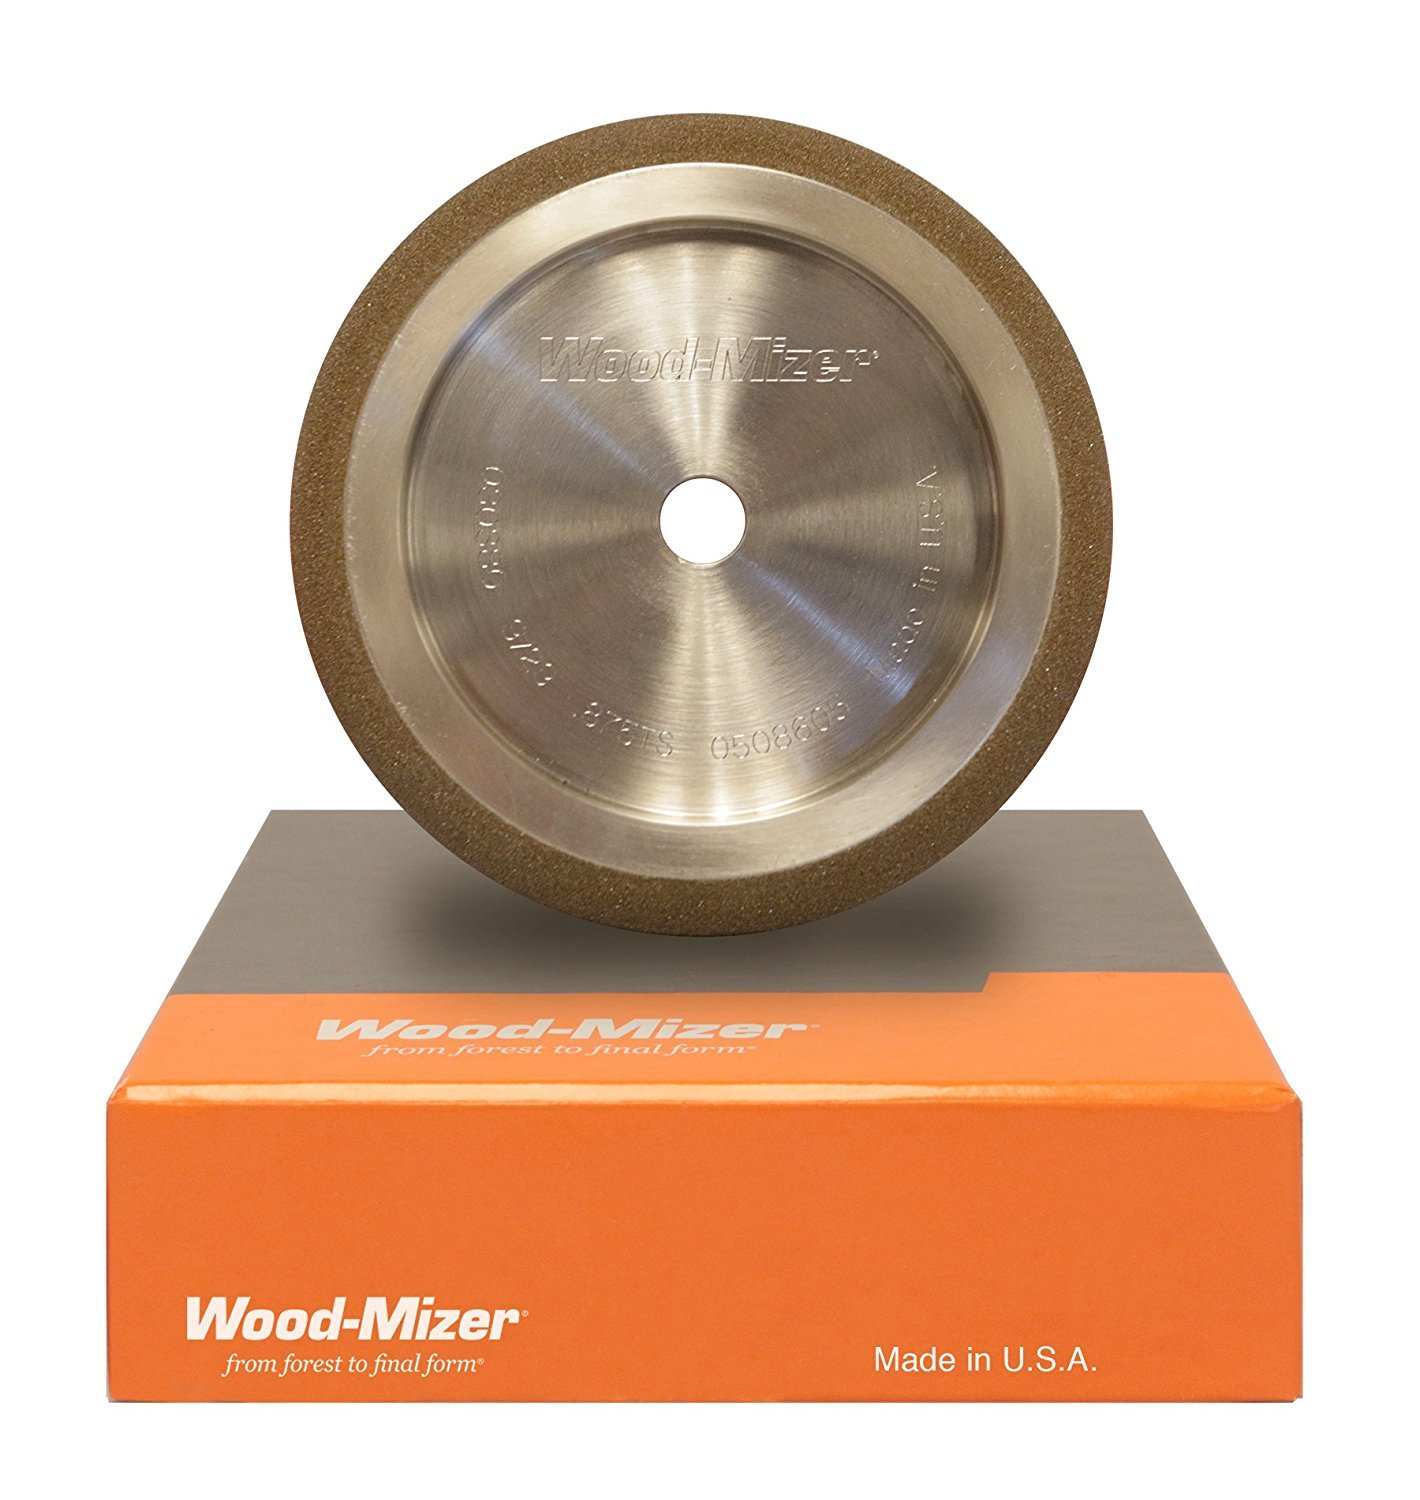 Wood-Mizer 5'' CBN Grinding Wheel 1/2'' Tooth Spacing 10/30 Angle by Wood-Mizer